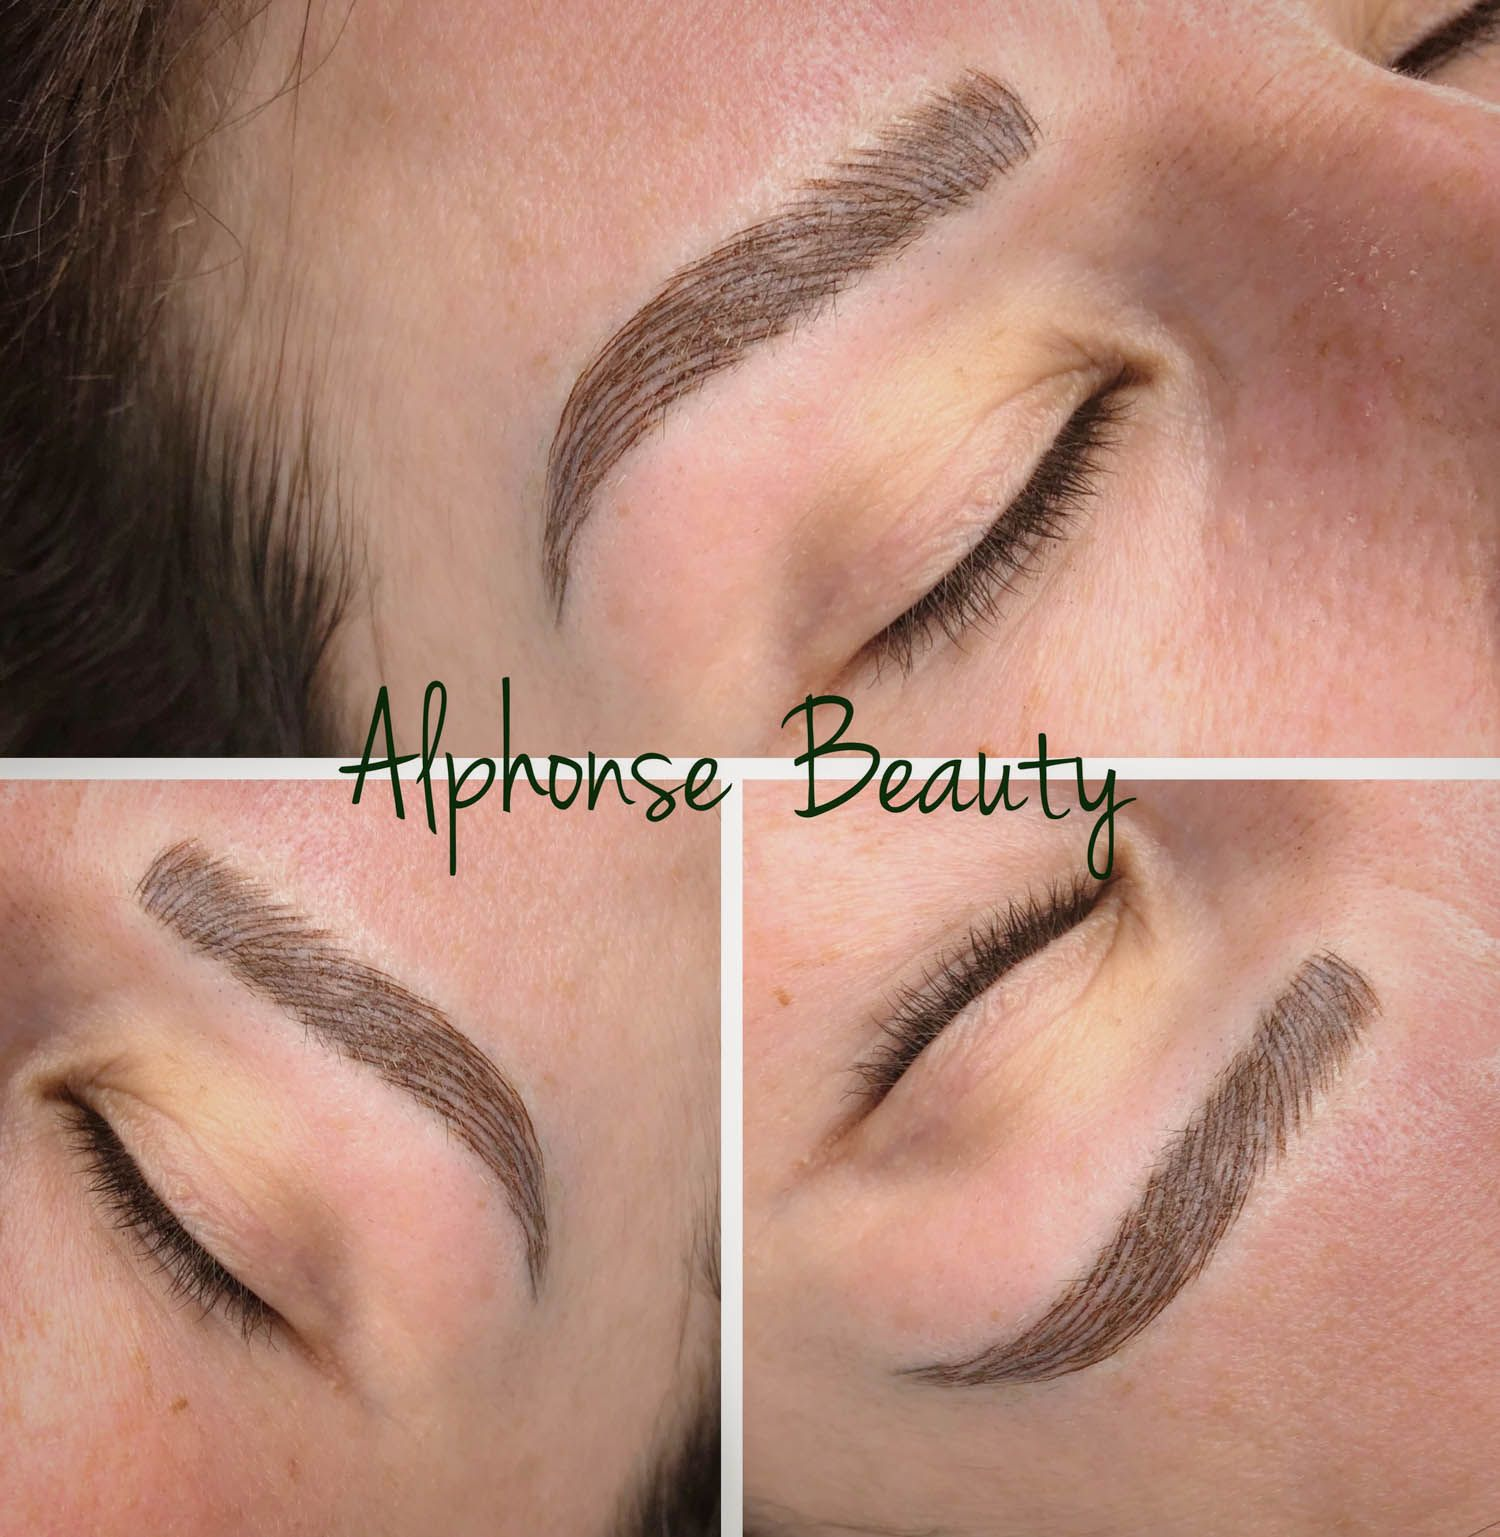 Microbladed eyebrows performed at Alphonse Beauty